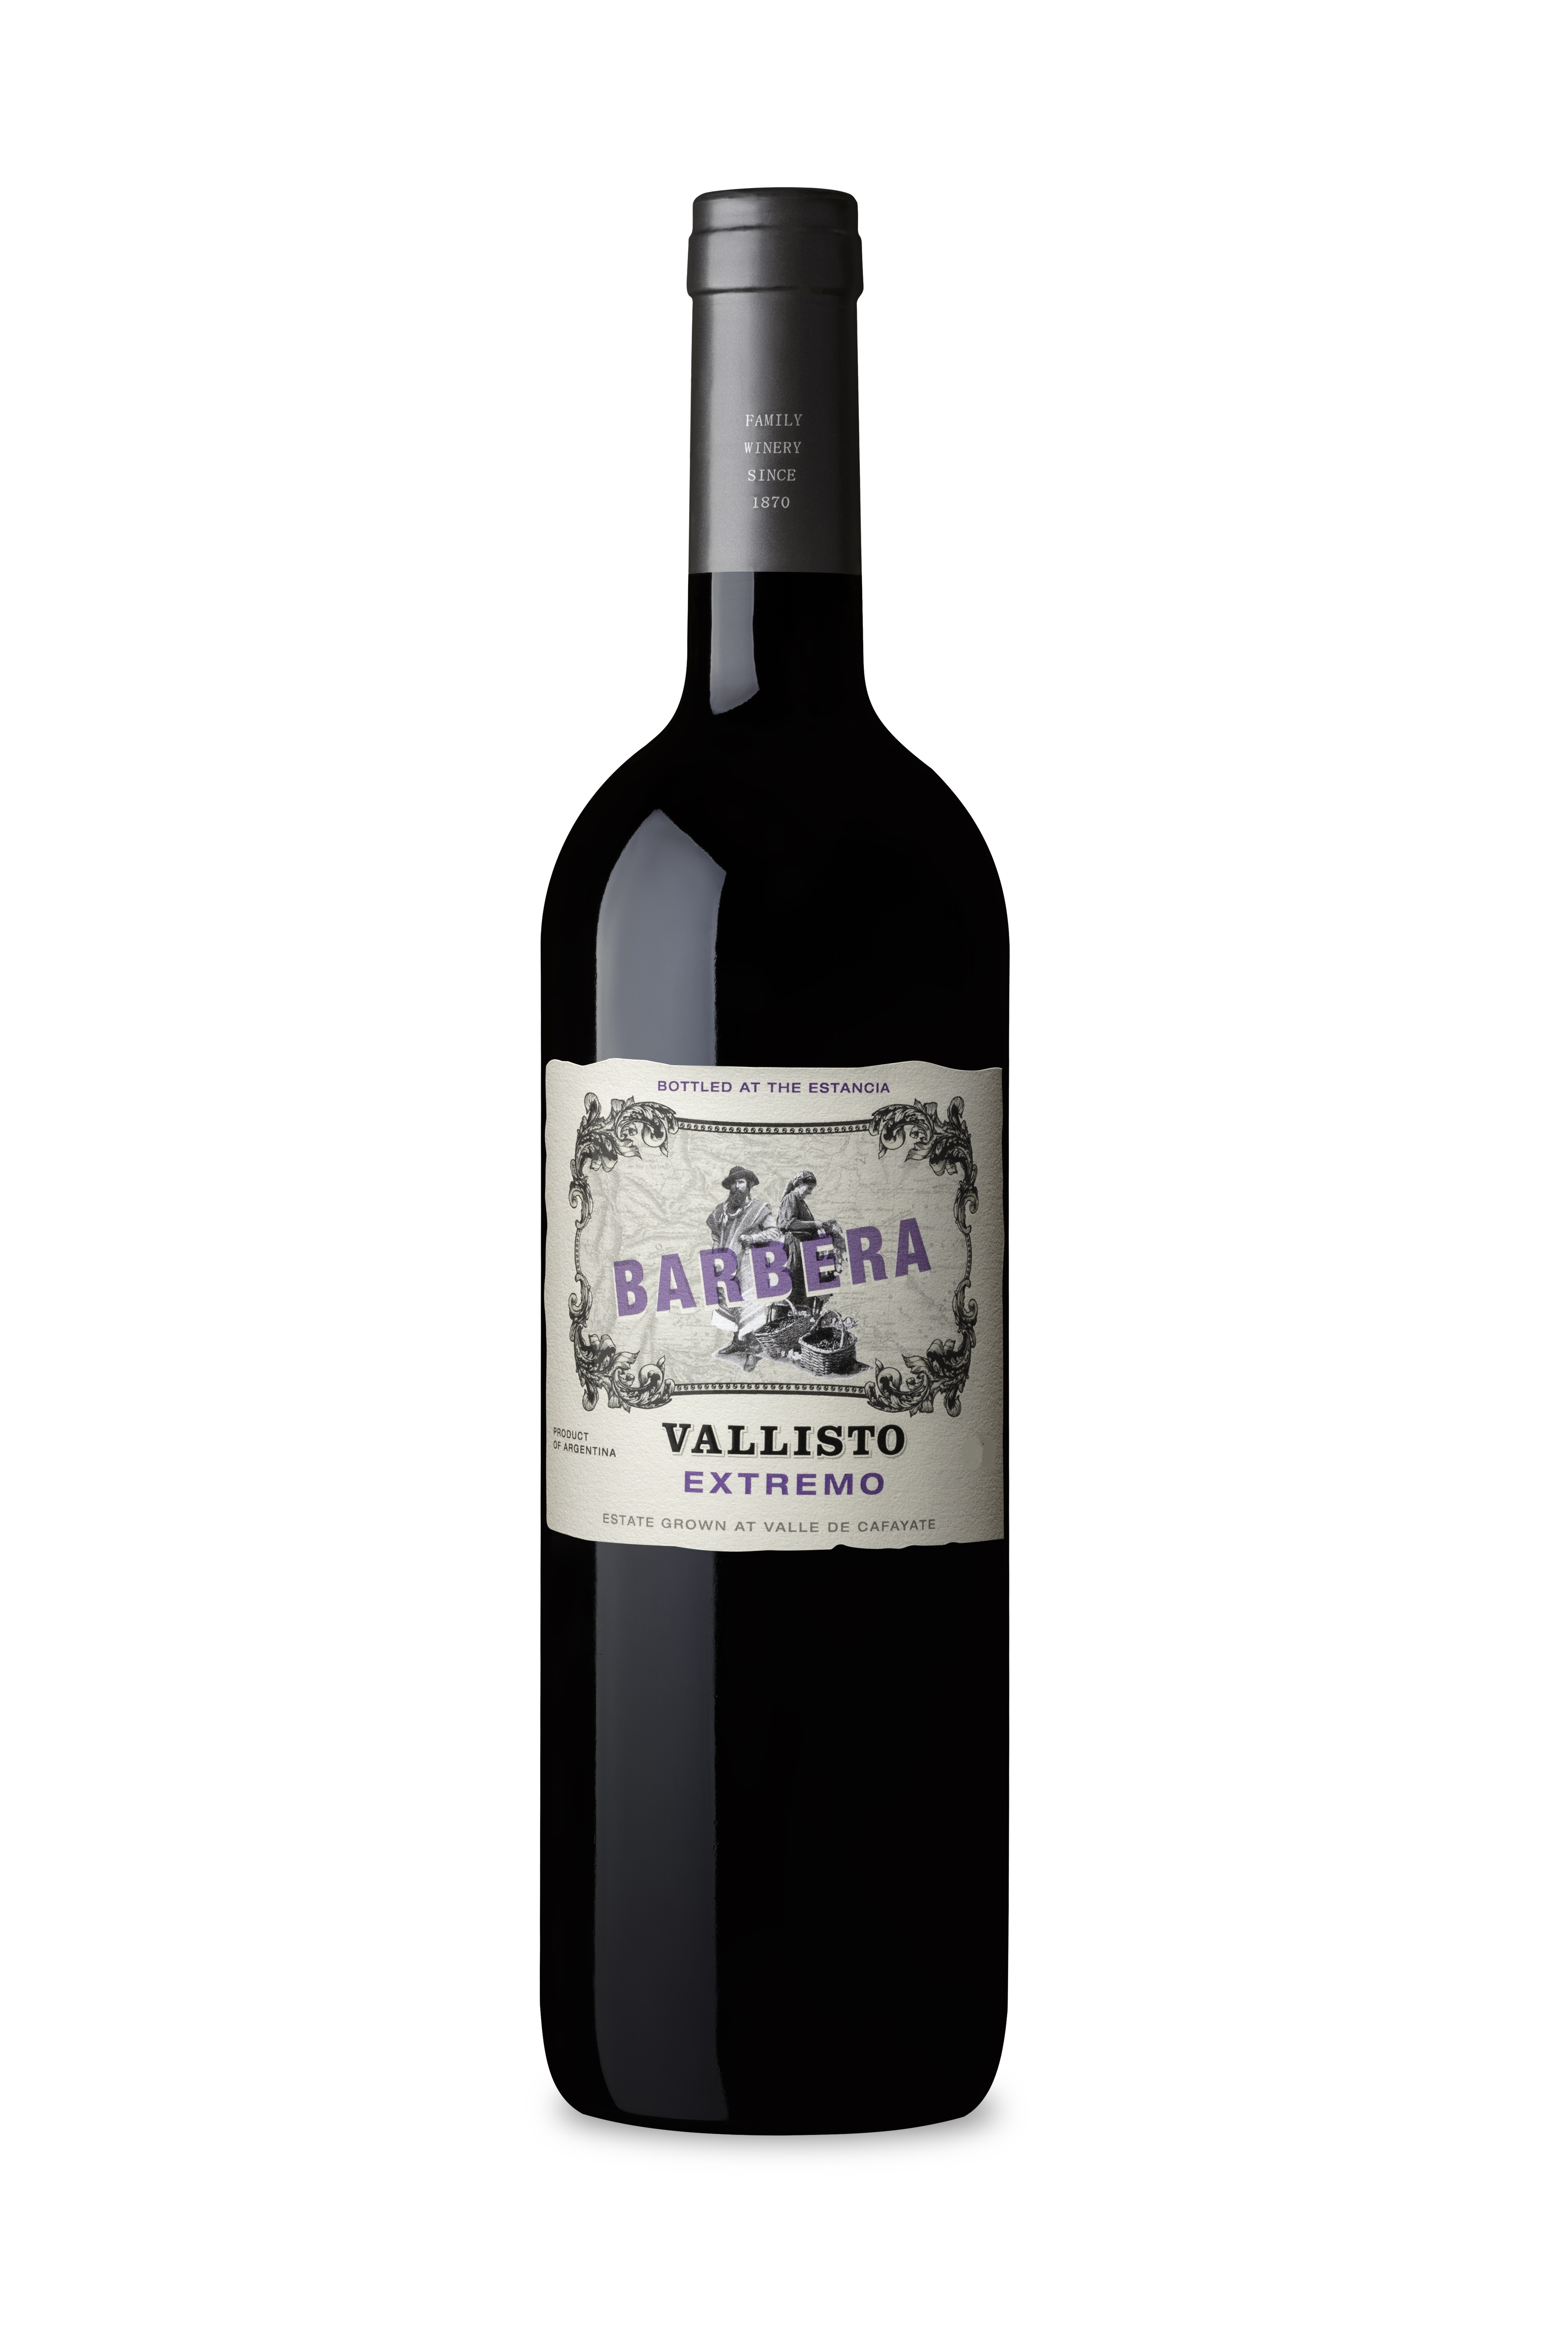 Vallisto Barbera